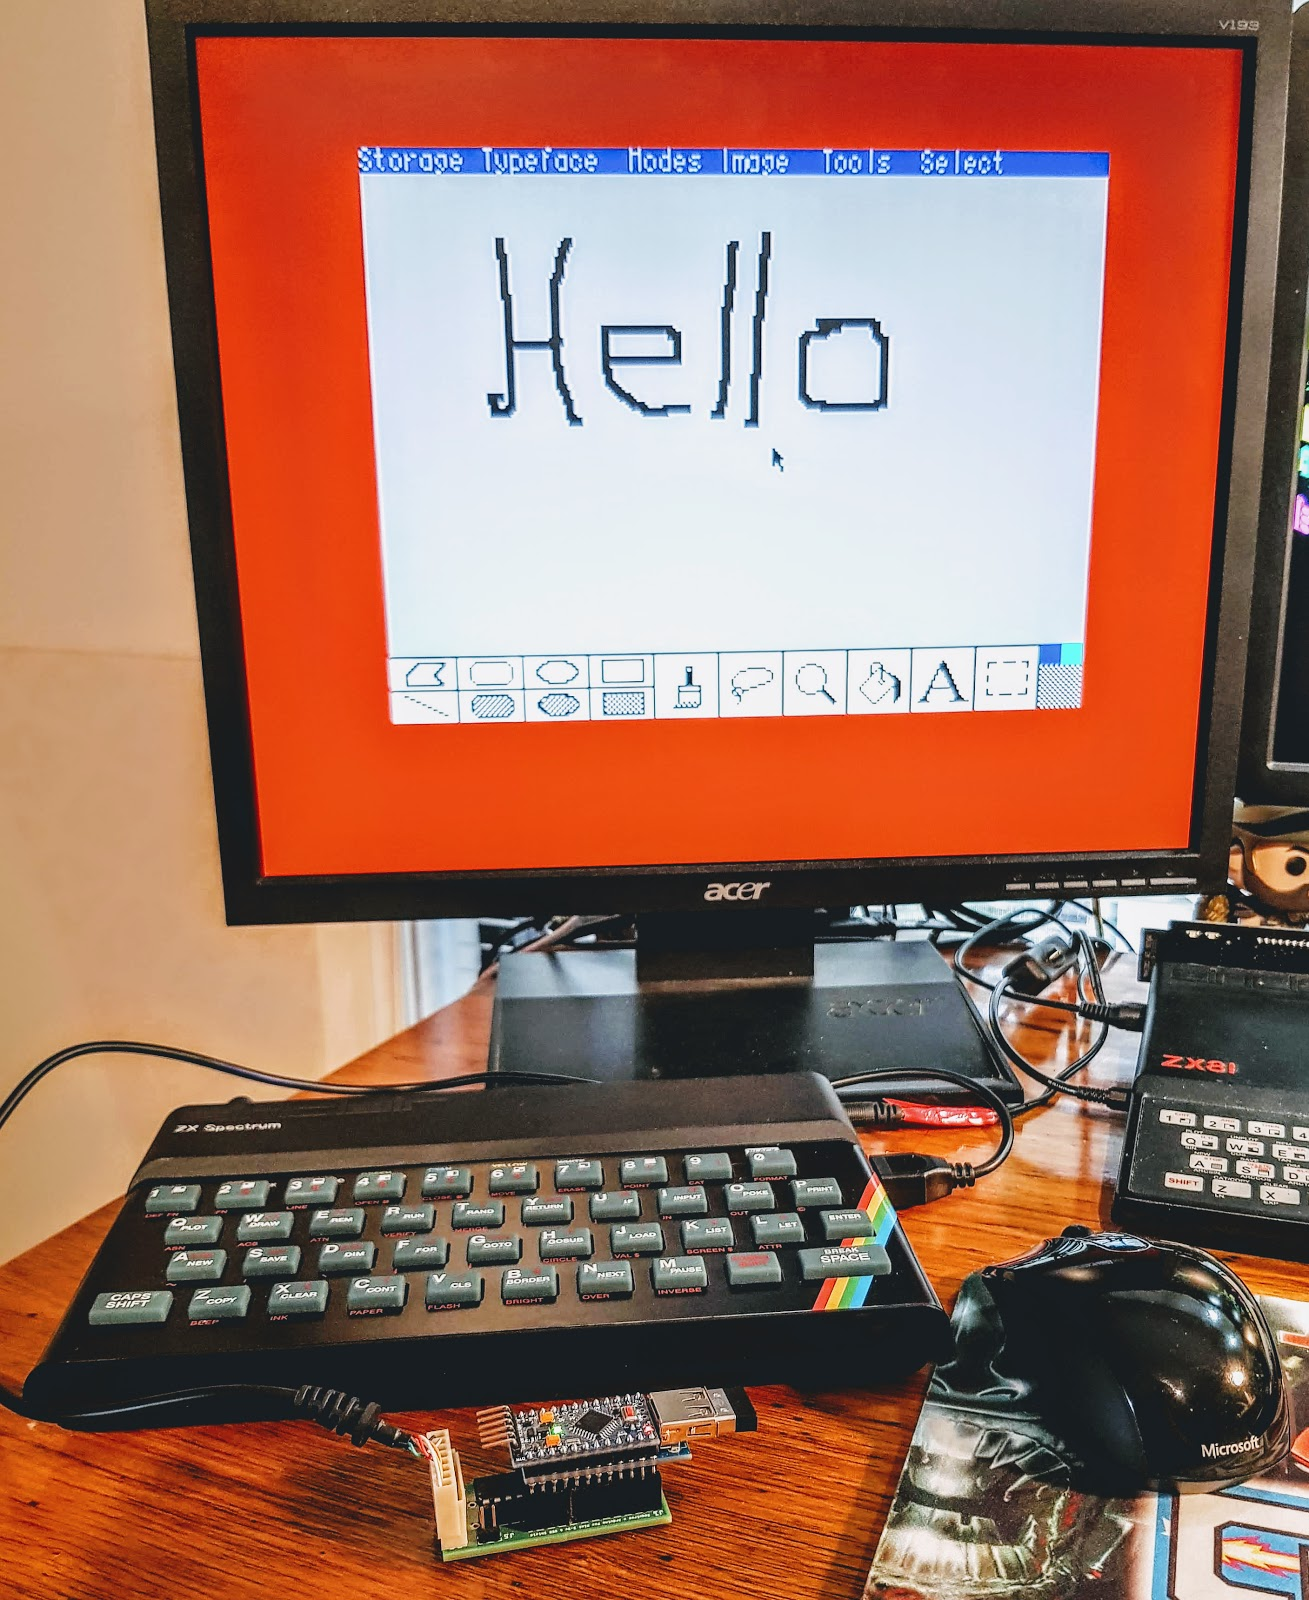 Zx81 Keyboard Adventure Circuit Diagram Using A Usb Mouse In The Artist 3